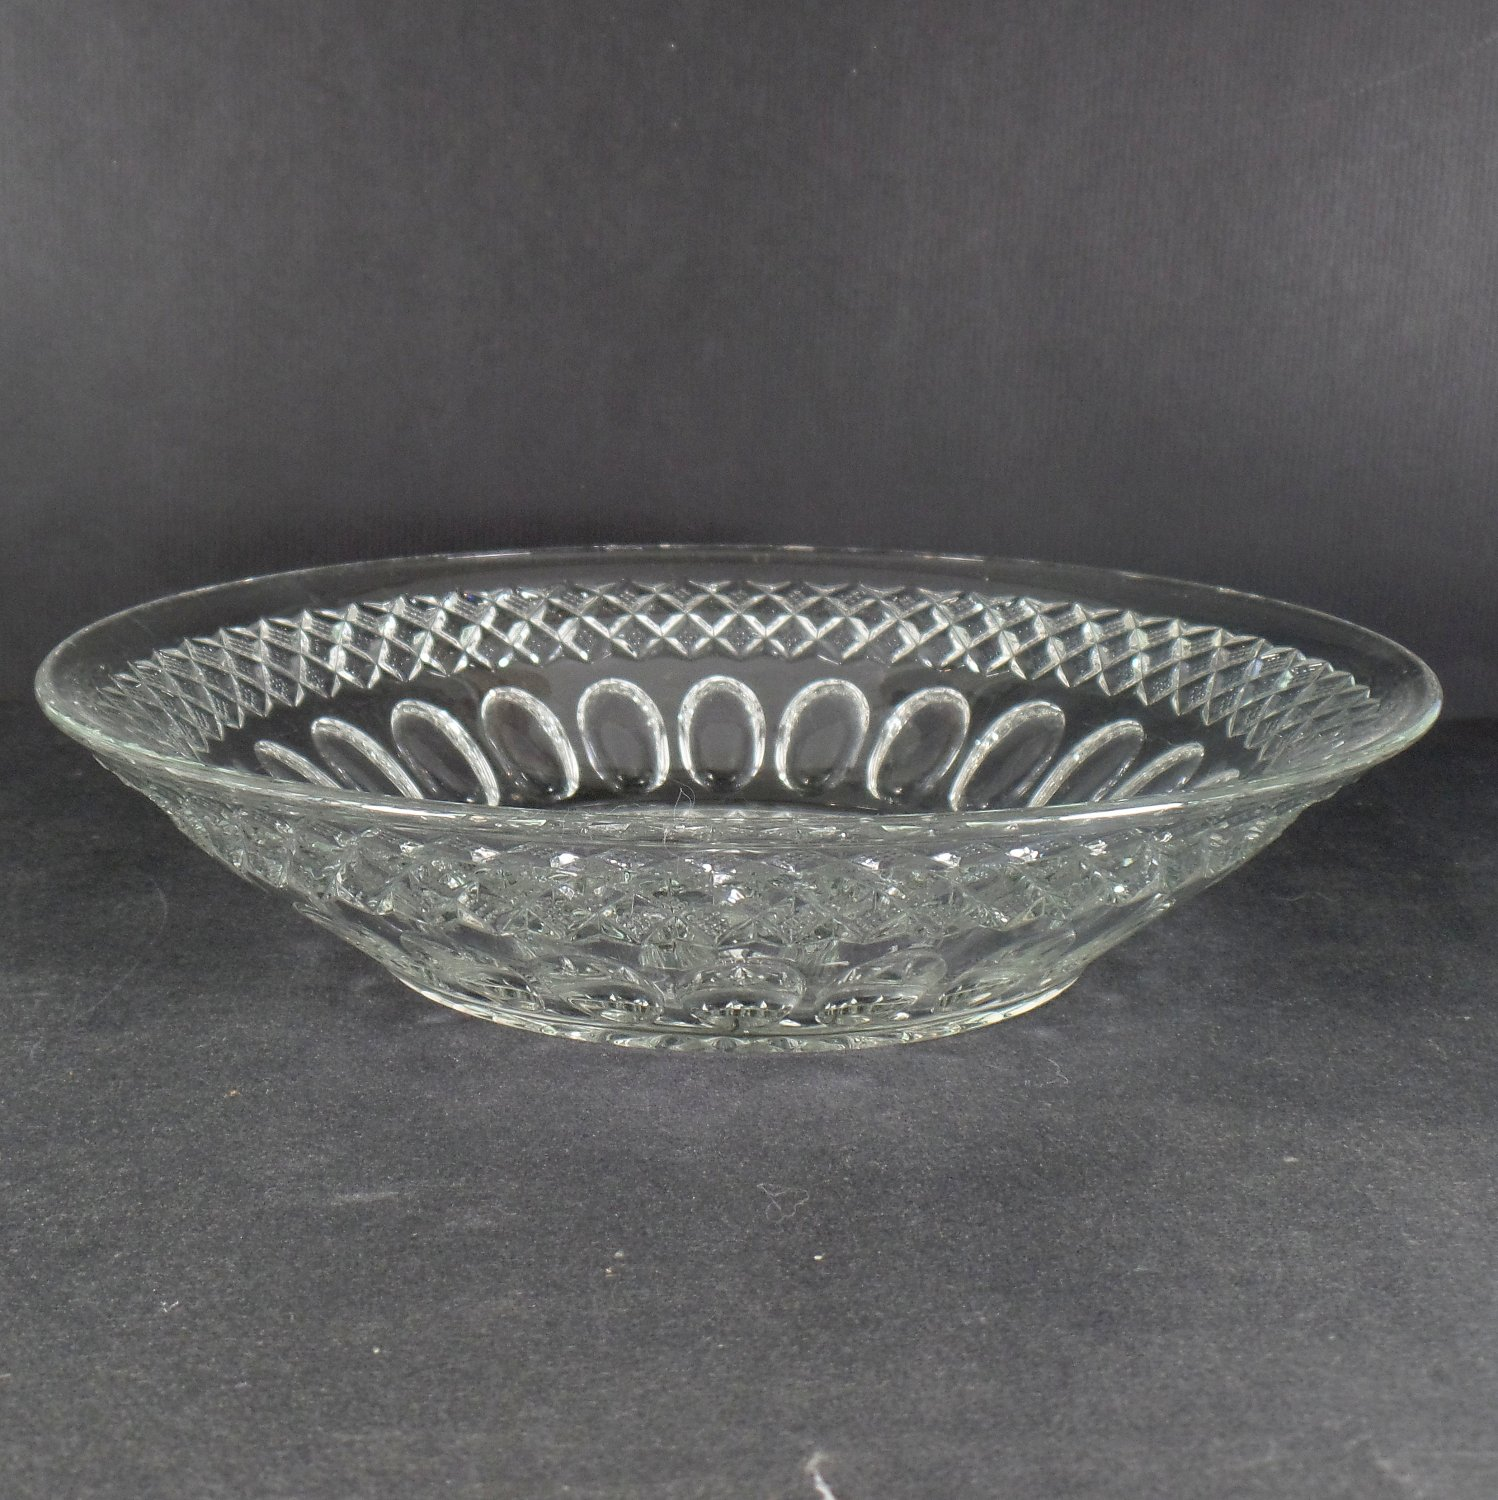 Westmoreland Waterford Clear 11 Inch Round Bowl